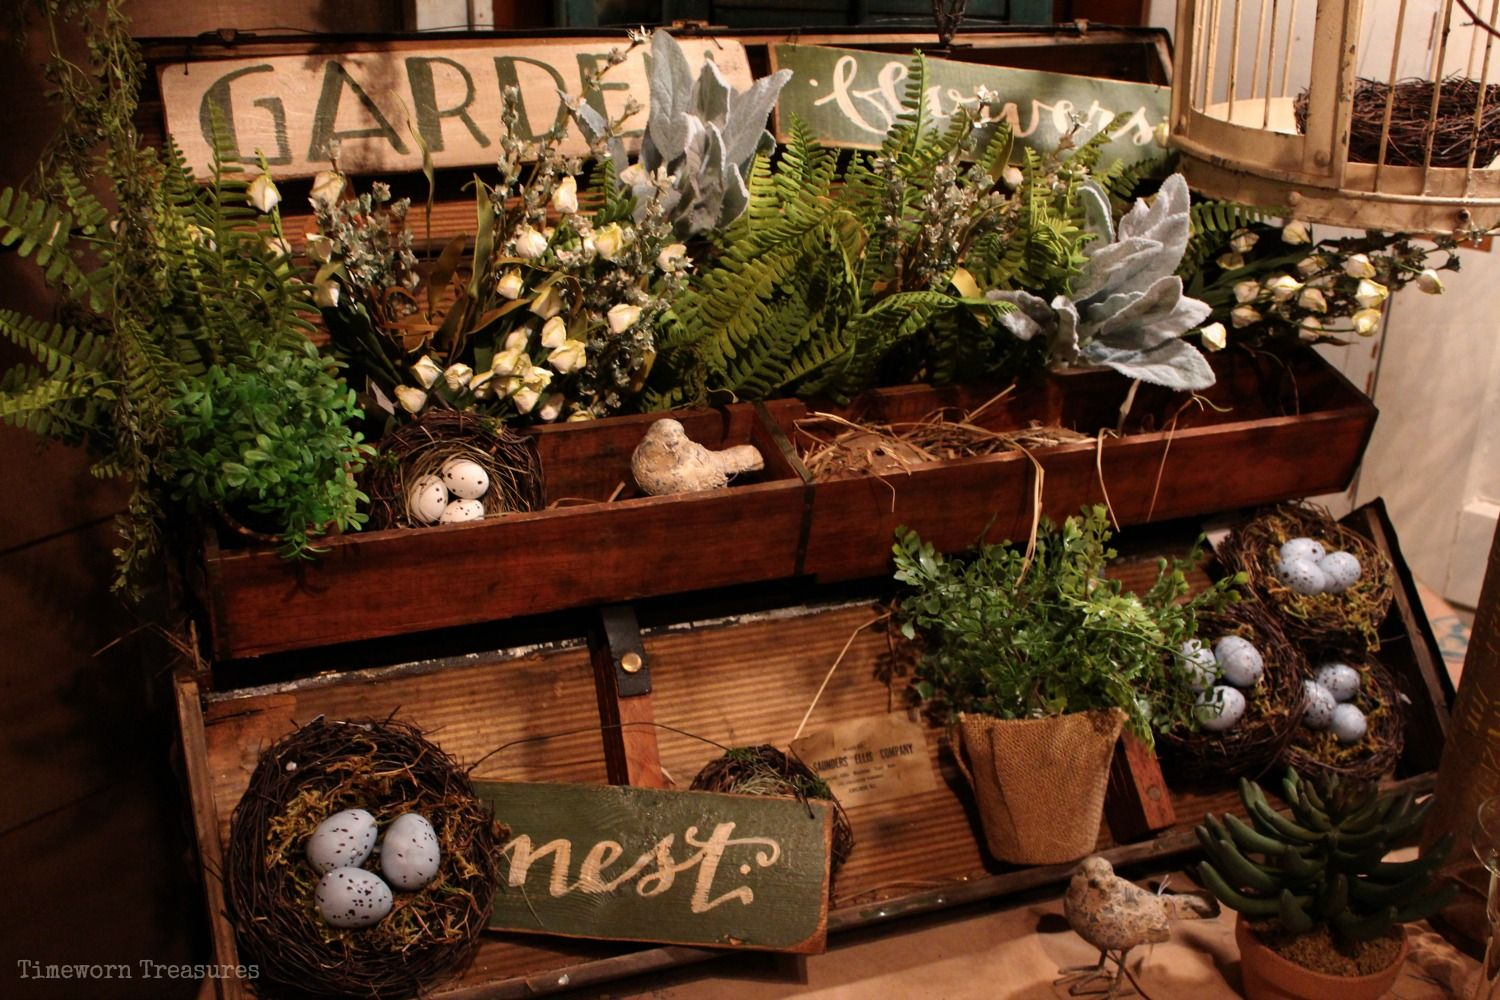 Old toolbox full of flowers, herbs, wooden signs, nests, etc. Spring ...